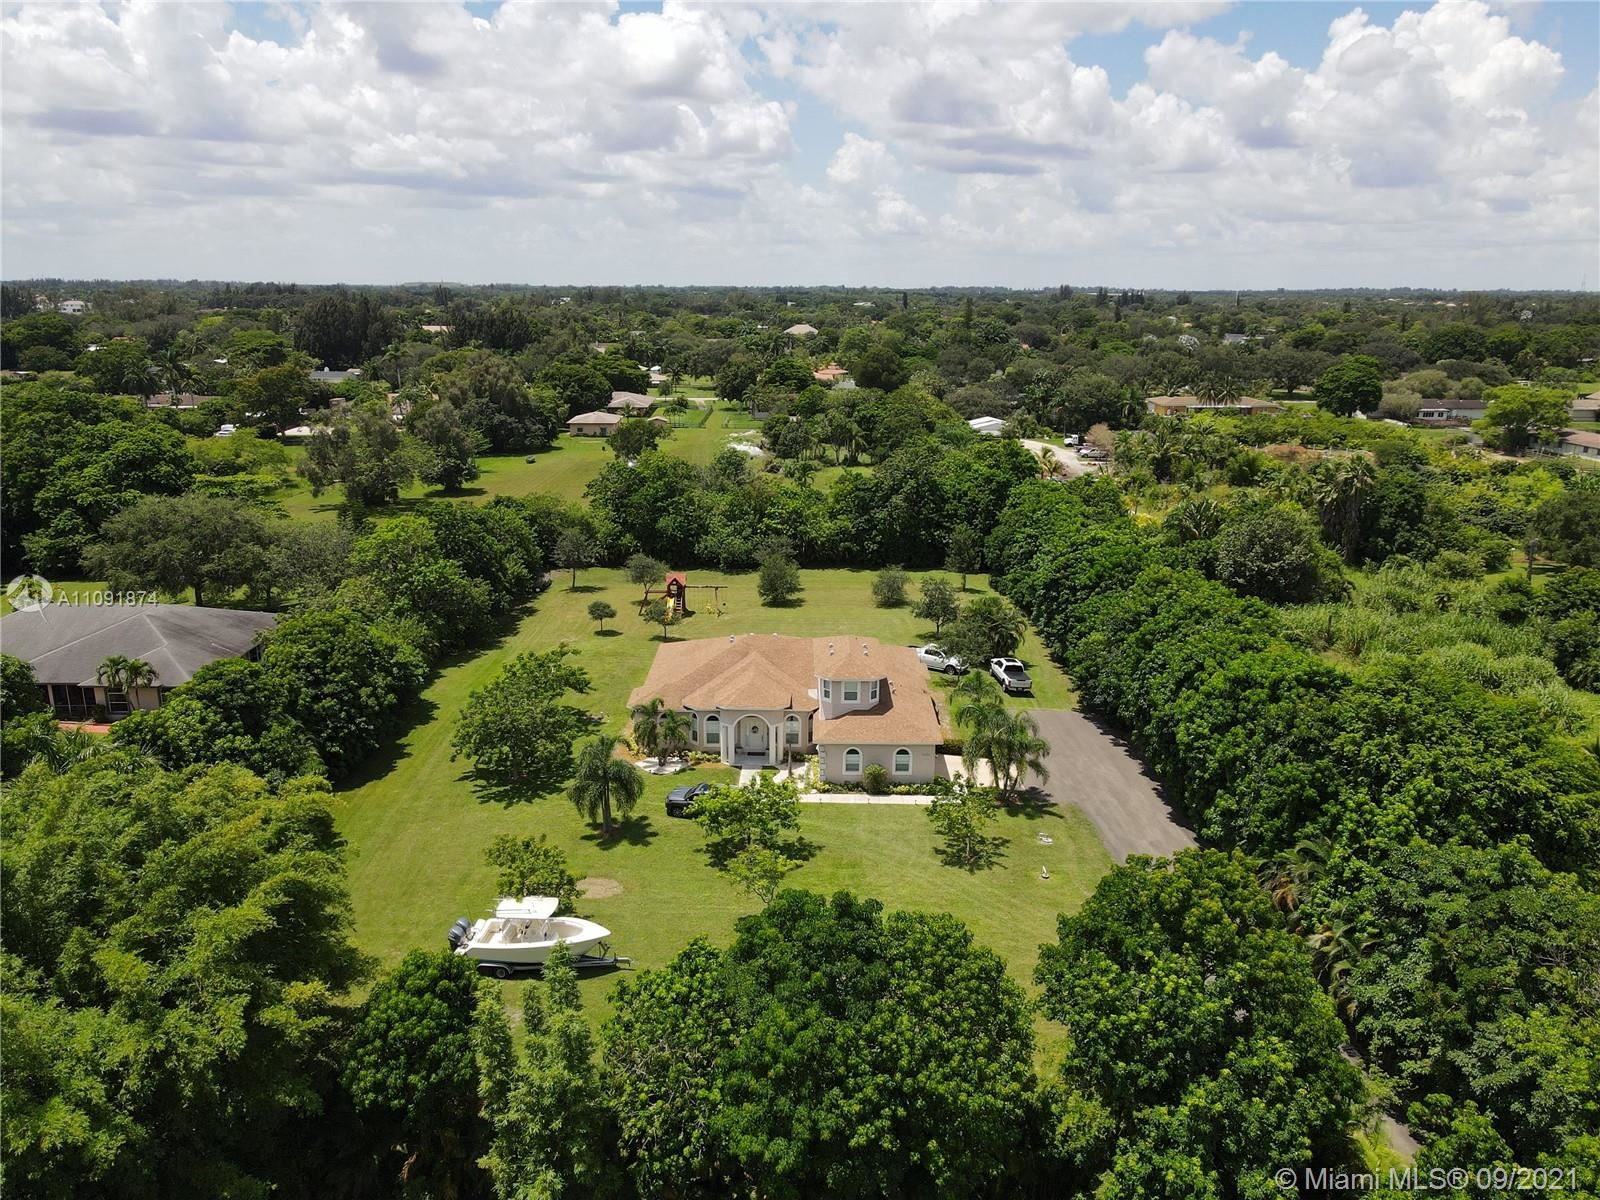 5033 SW 160th Ave, SouthWest Ranches, FL 33331 - #: A11091874